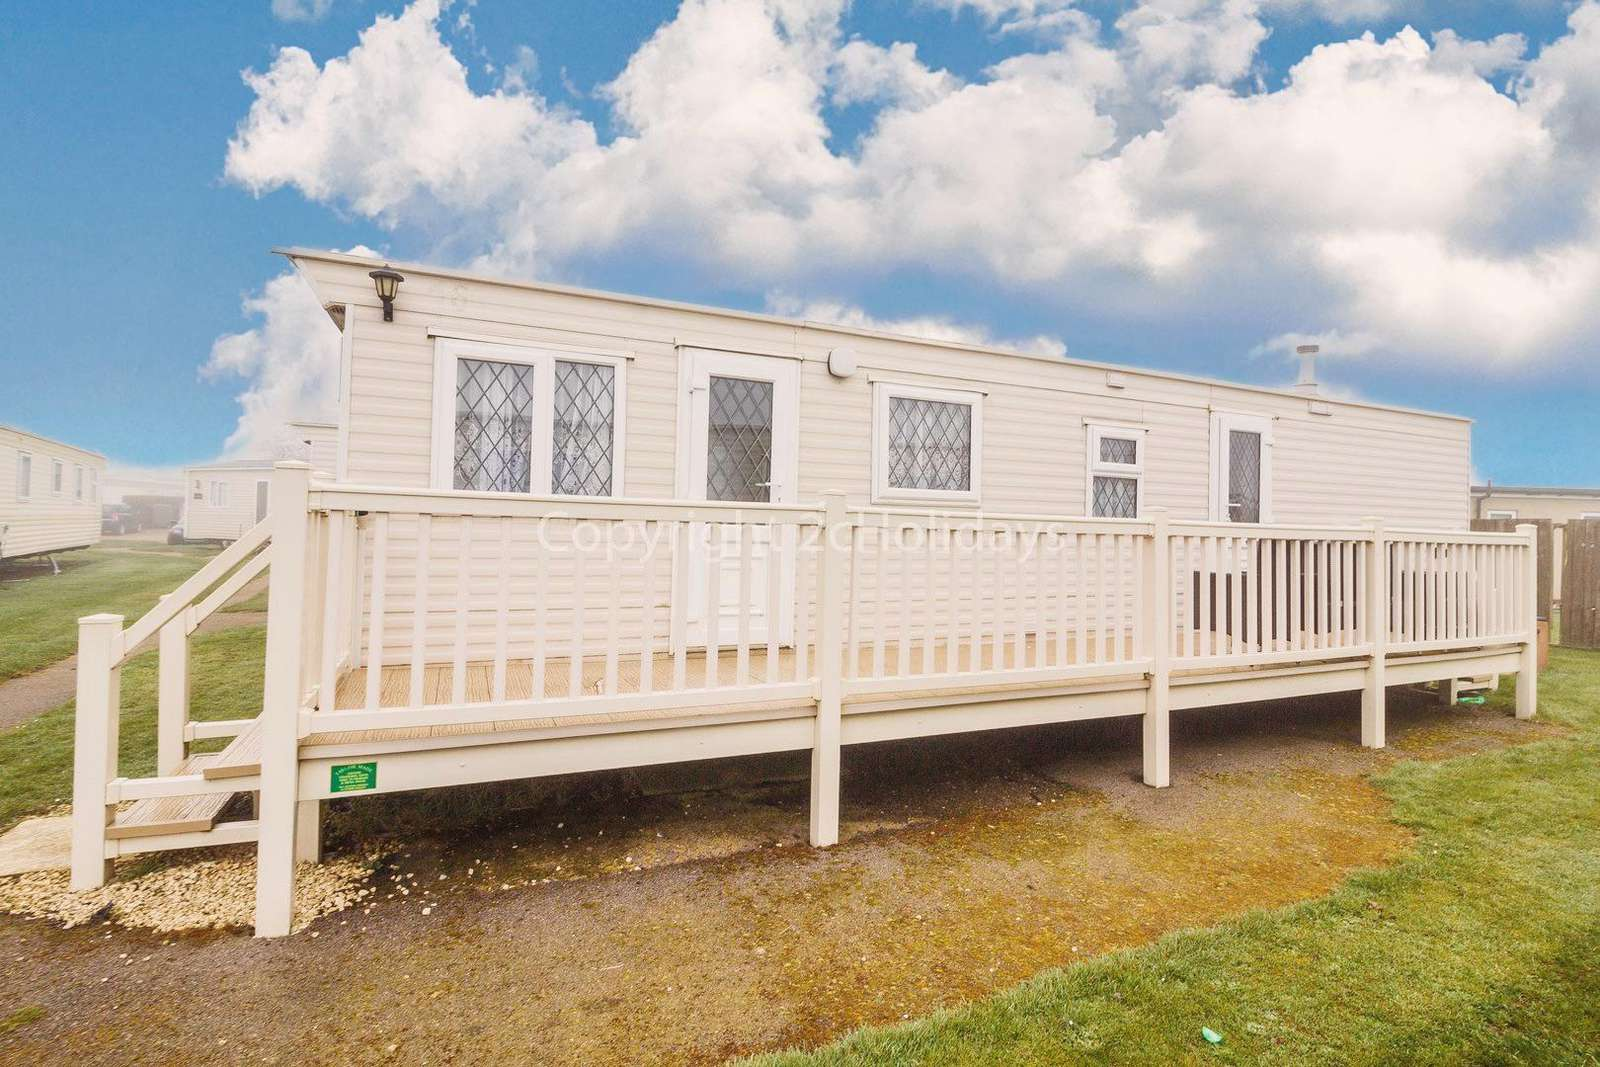 So many families have enjoyed their stay at this caravan